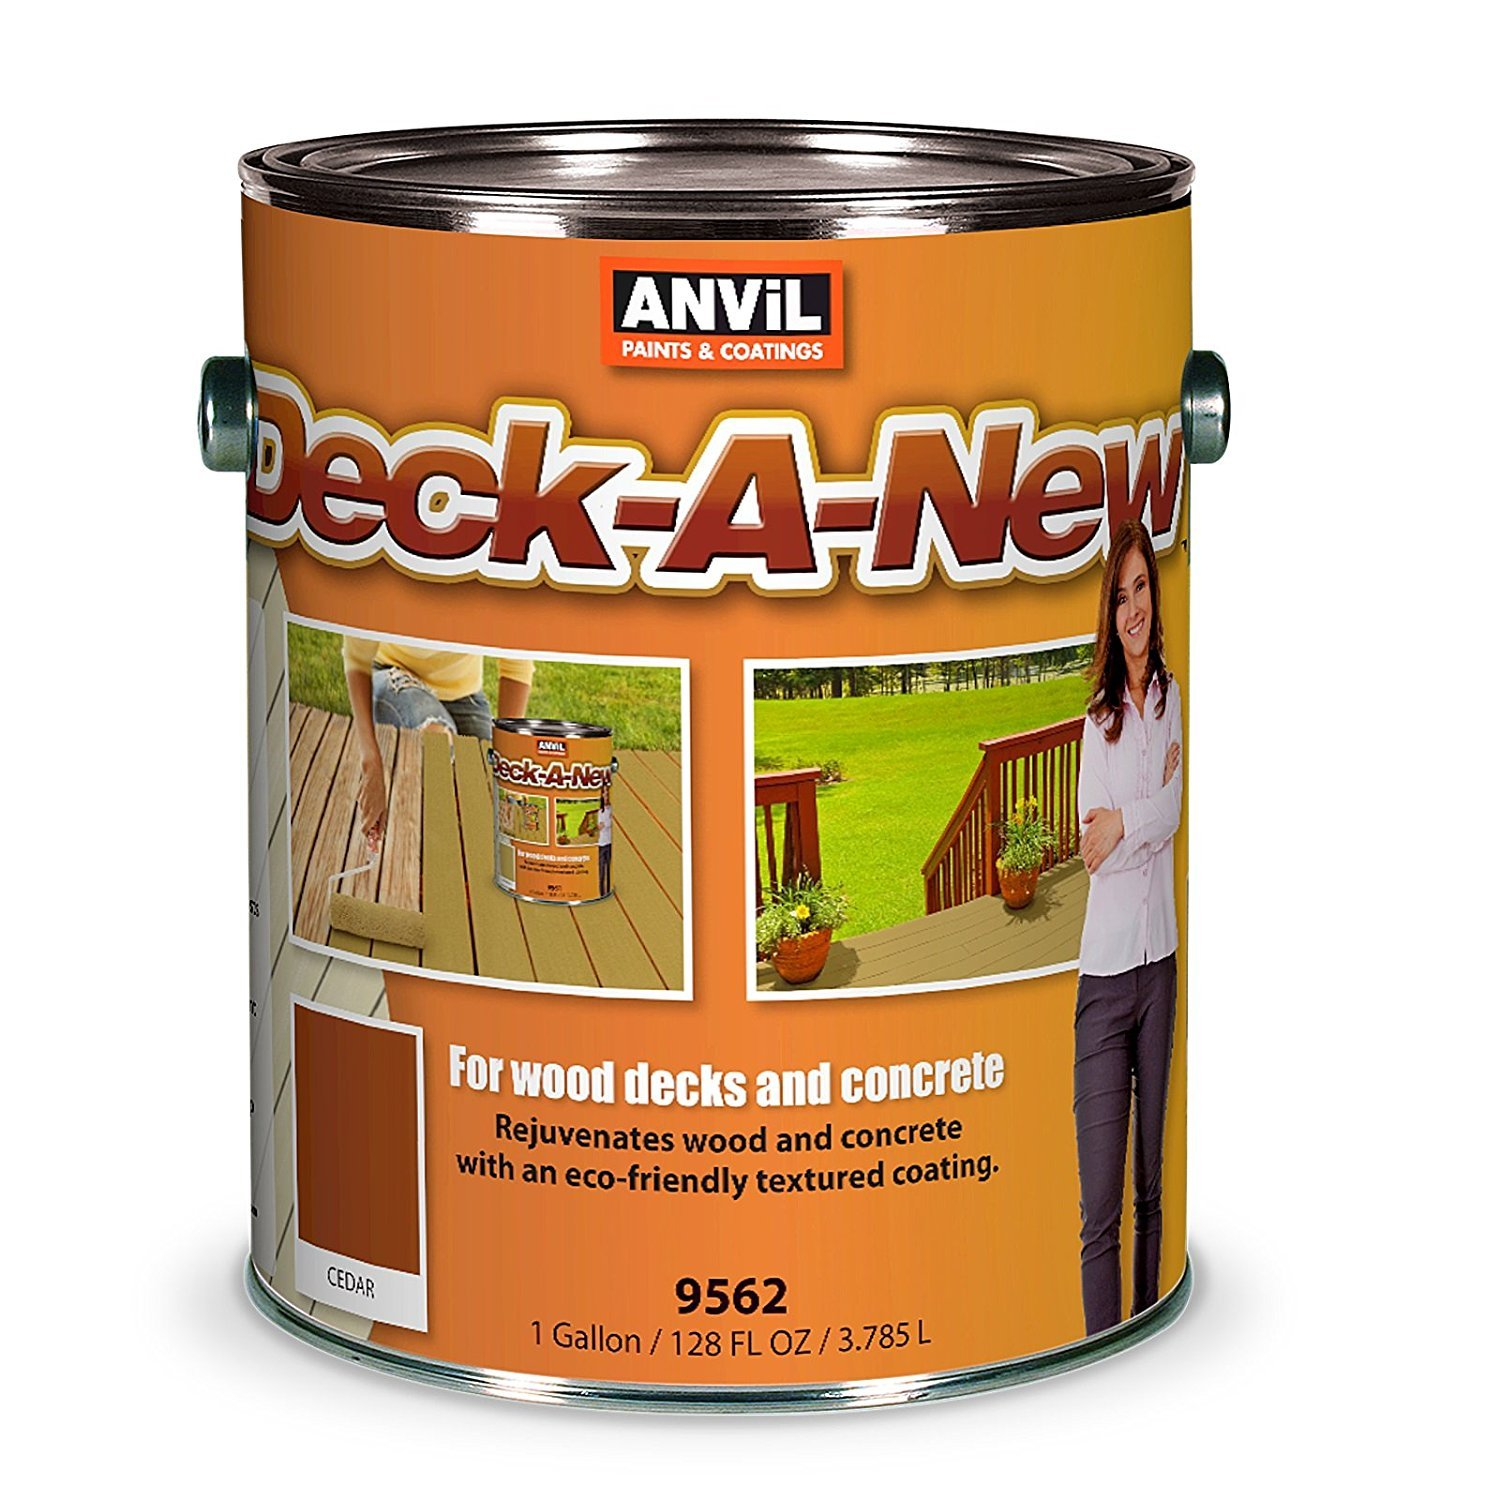 10. Anvil Deck-A-New Resurfacer Paint